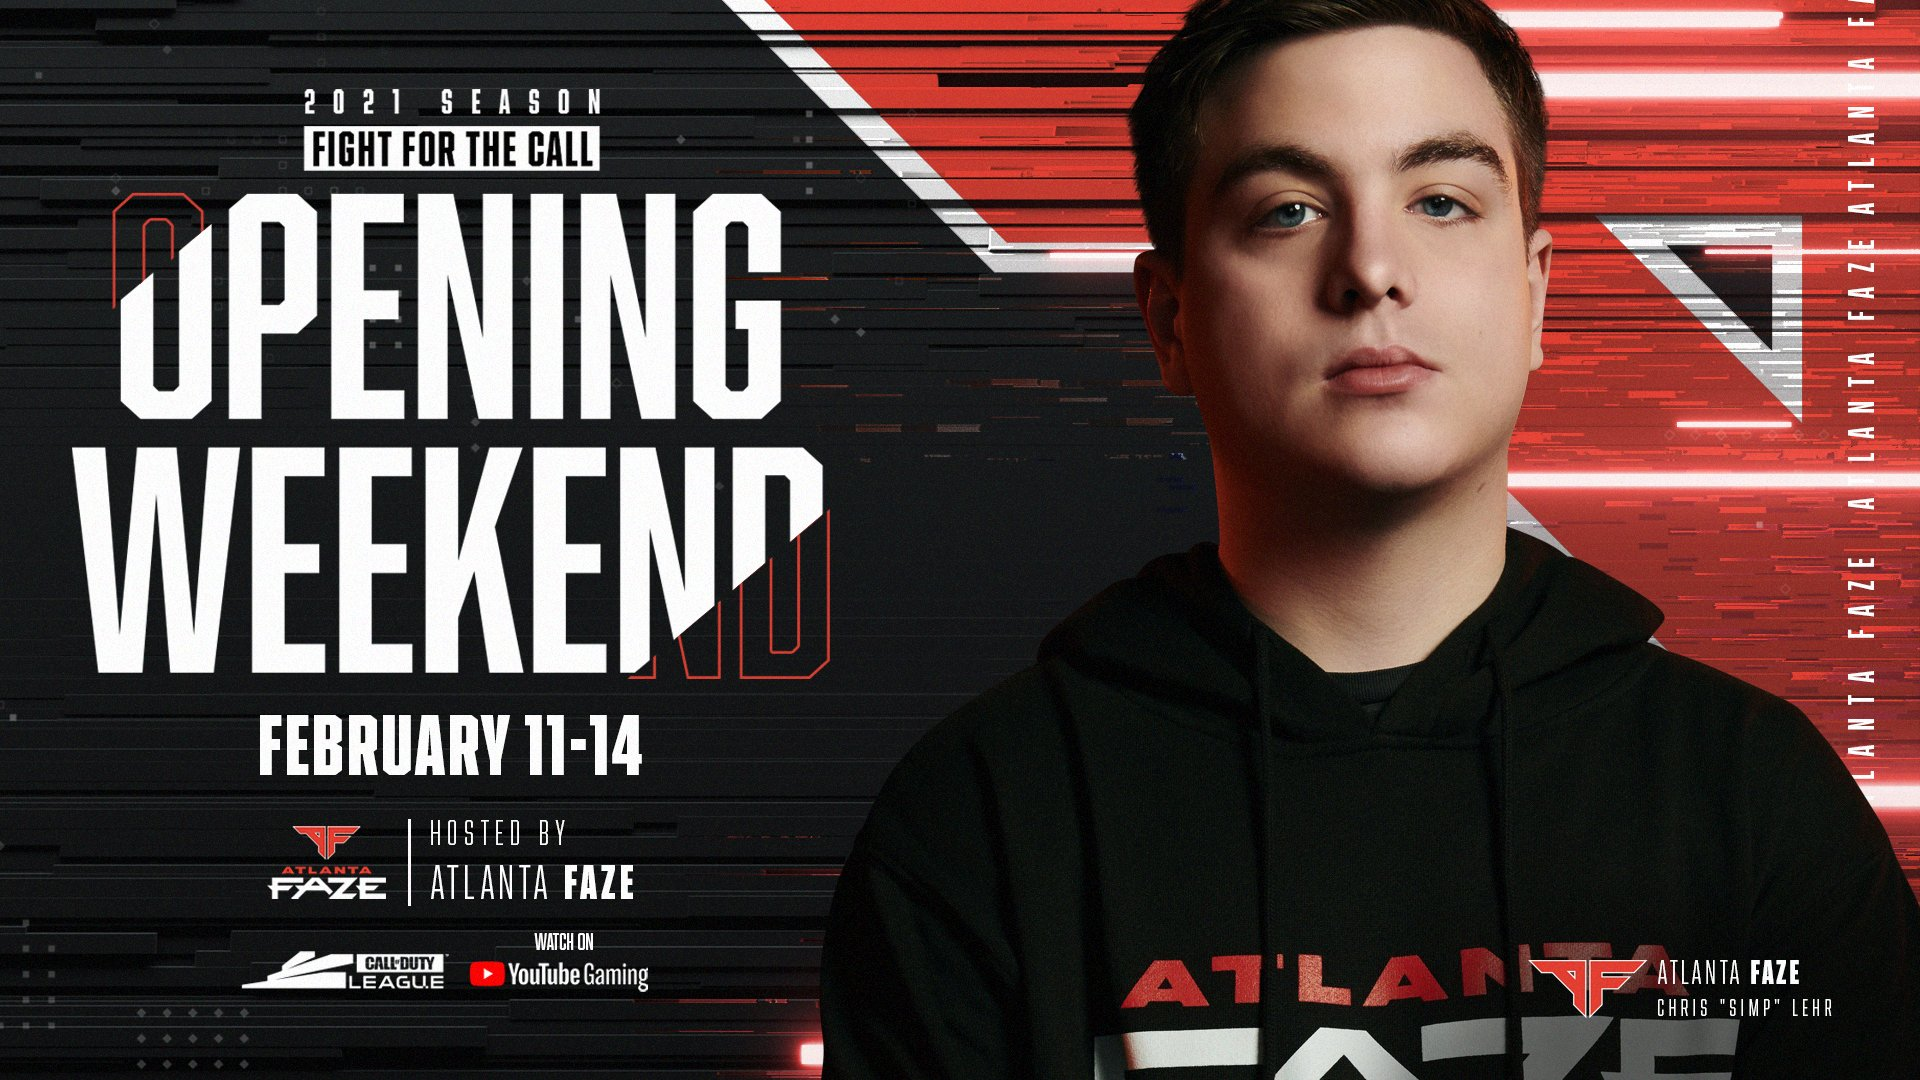 call of duty league atlanta faze home series